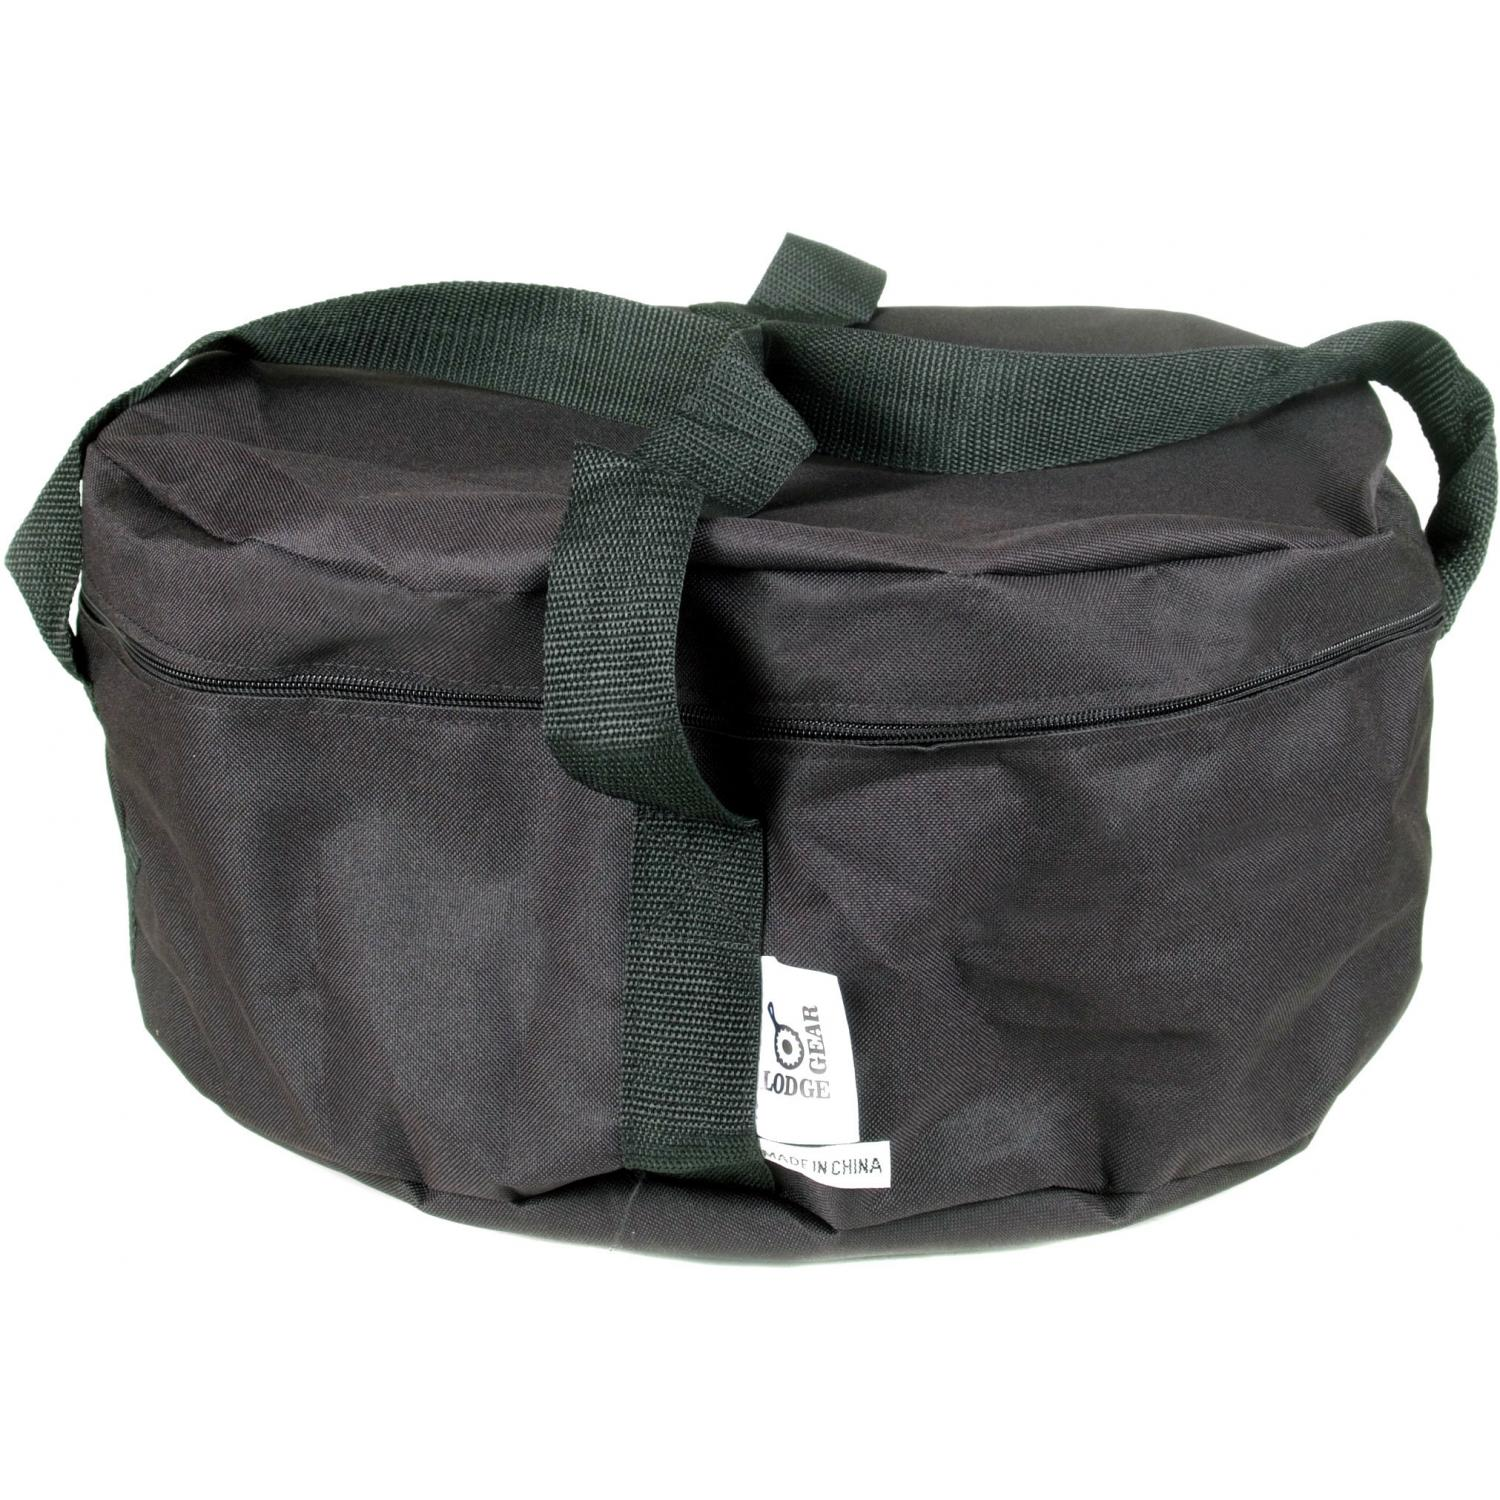 Lodge Tote Bag For 16 Inch Camping Dutch Oven - A1-16